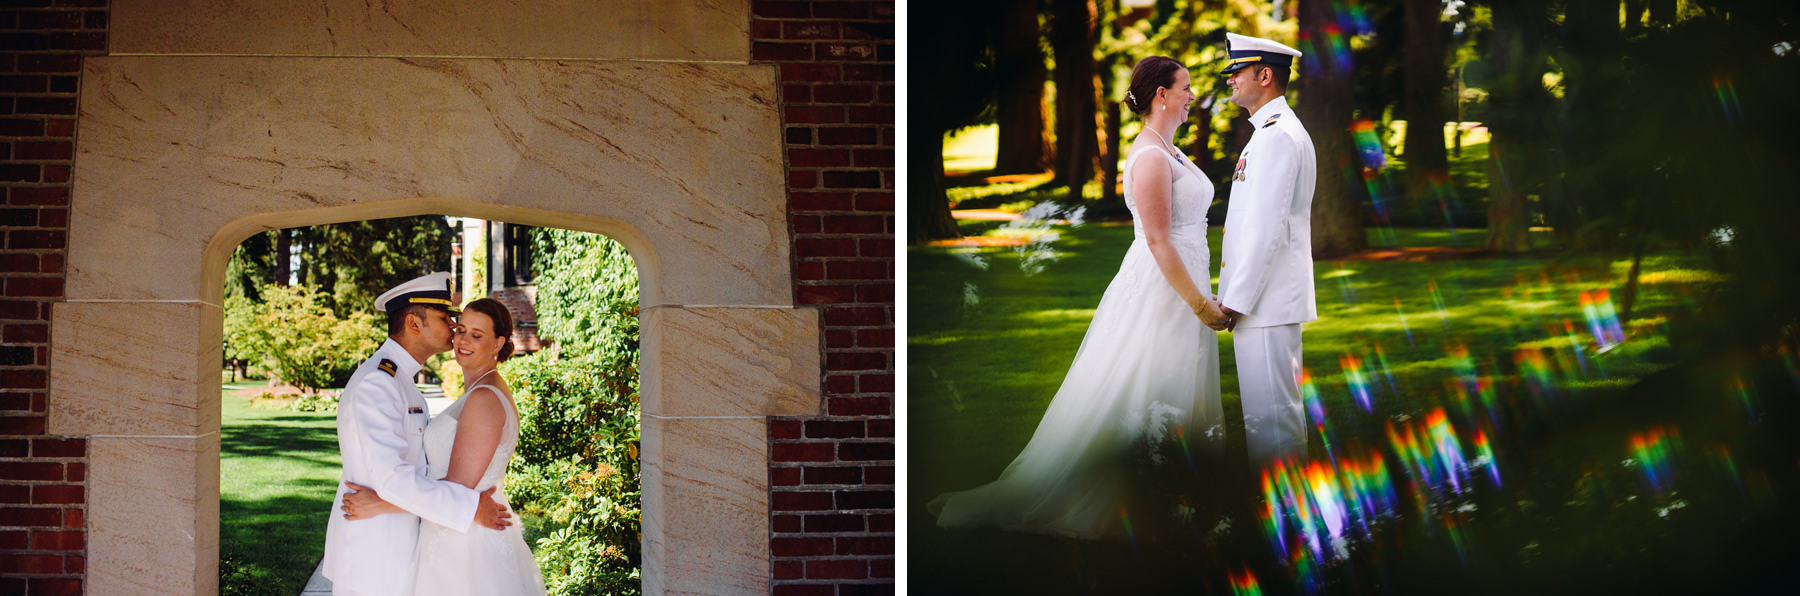 university of puget sound wedding photos